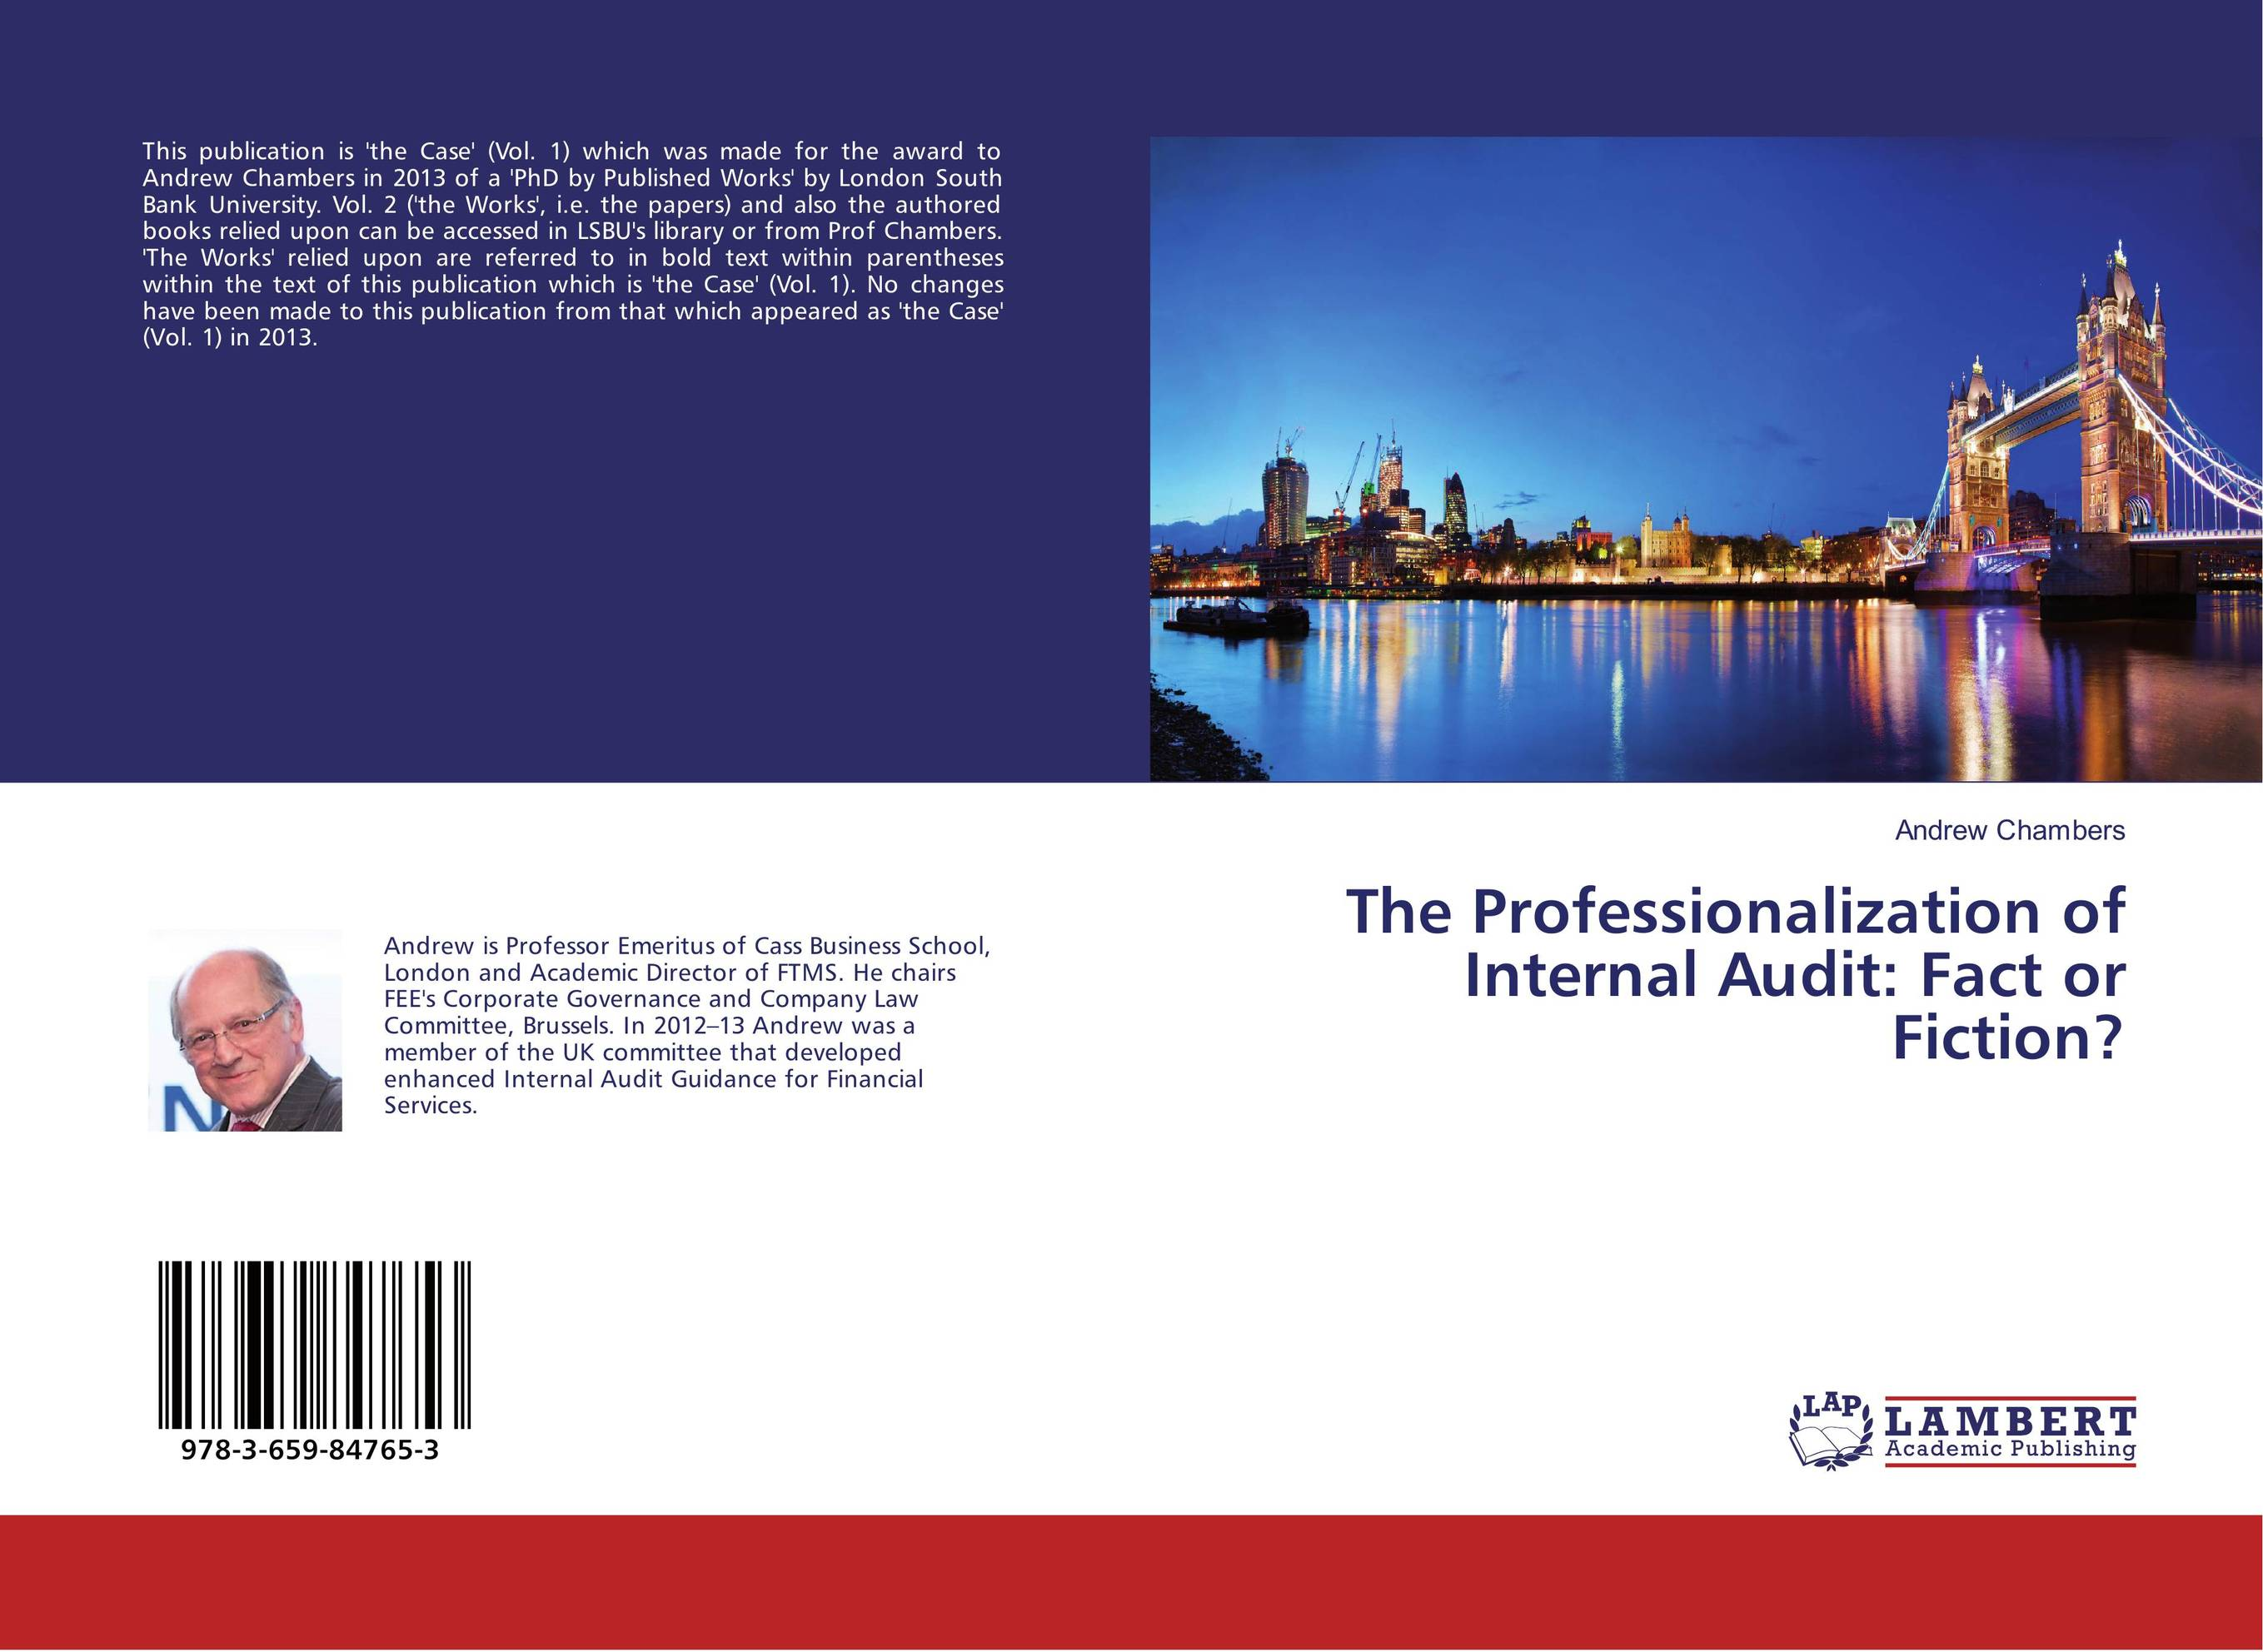 The Professionalization of Internal Audit: Fact or Fiction? crusade vol 3 the master of machines